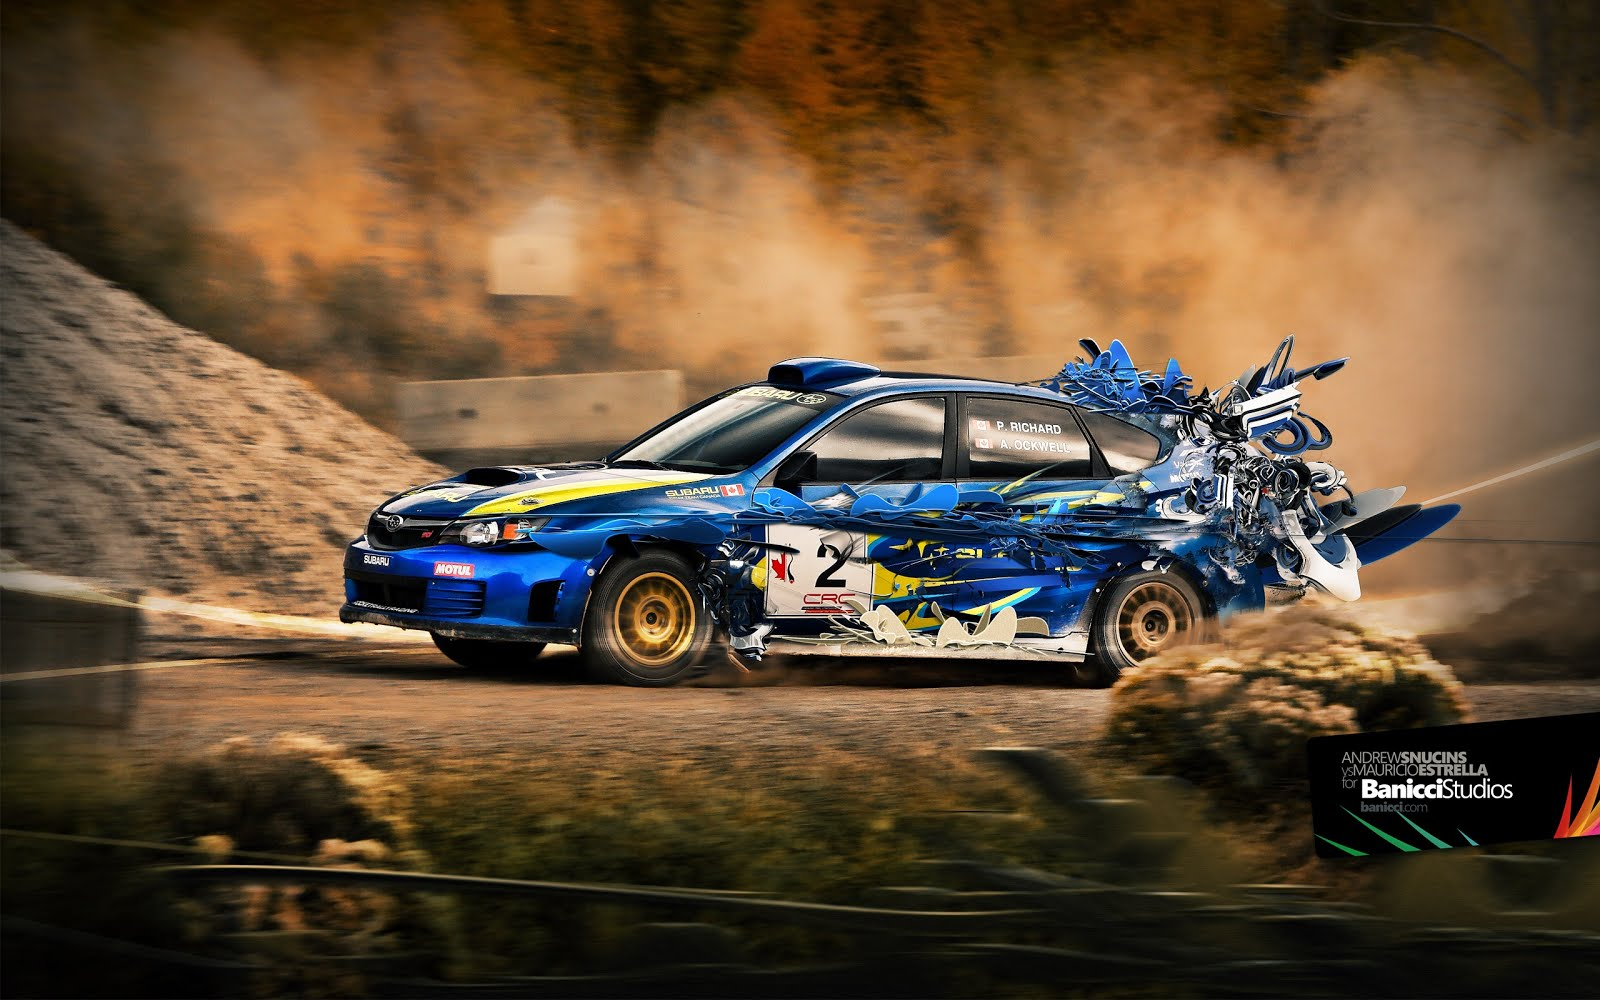 Pictures Gallery Of SUBARU HD Car Wallpapers For Windows 7 File Size 393169 Bytes Dimensions 1920 X 1080 Pixels